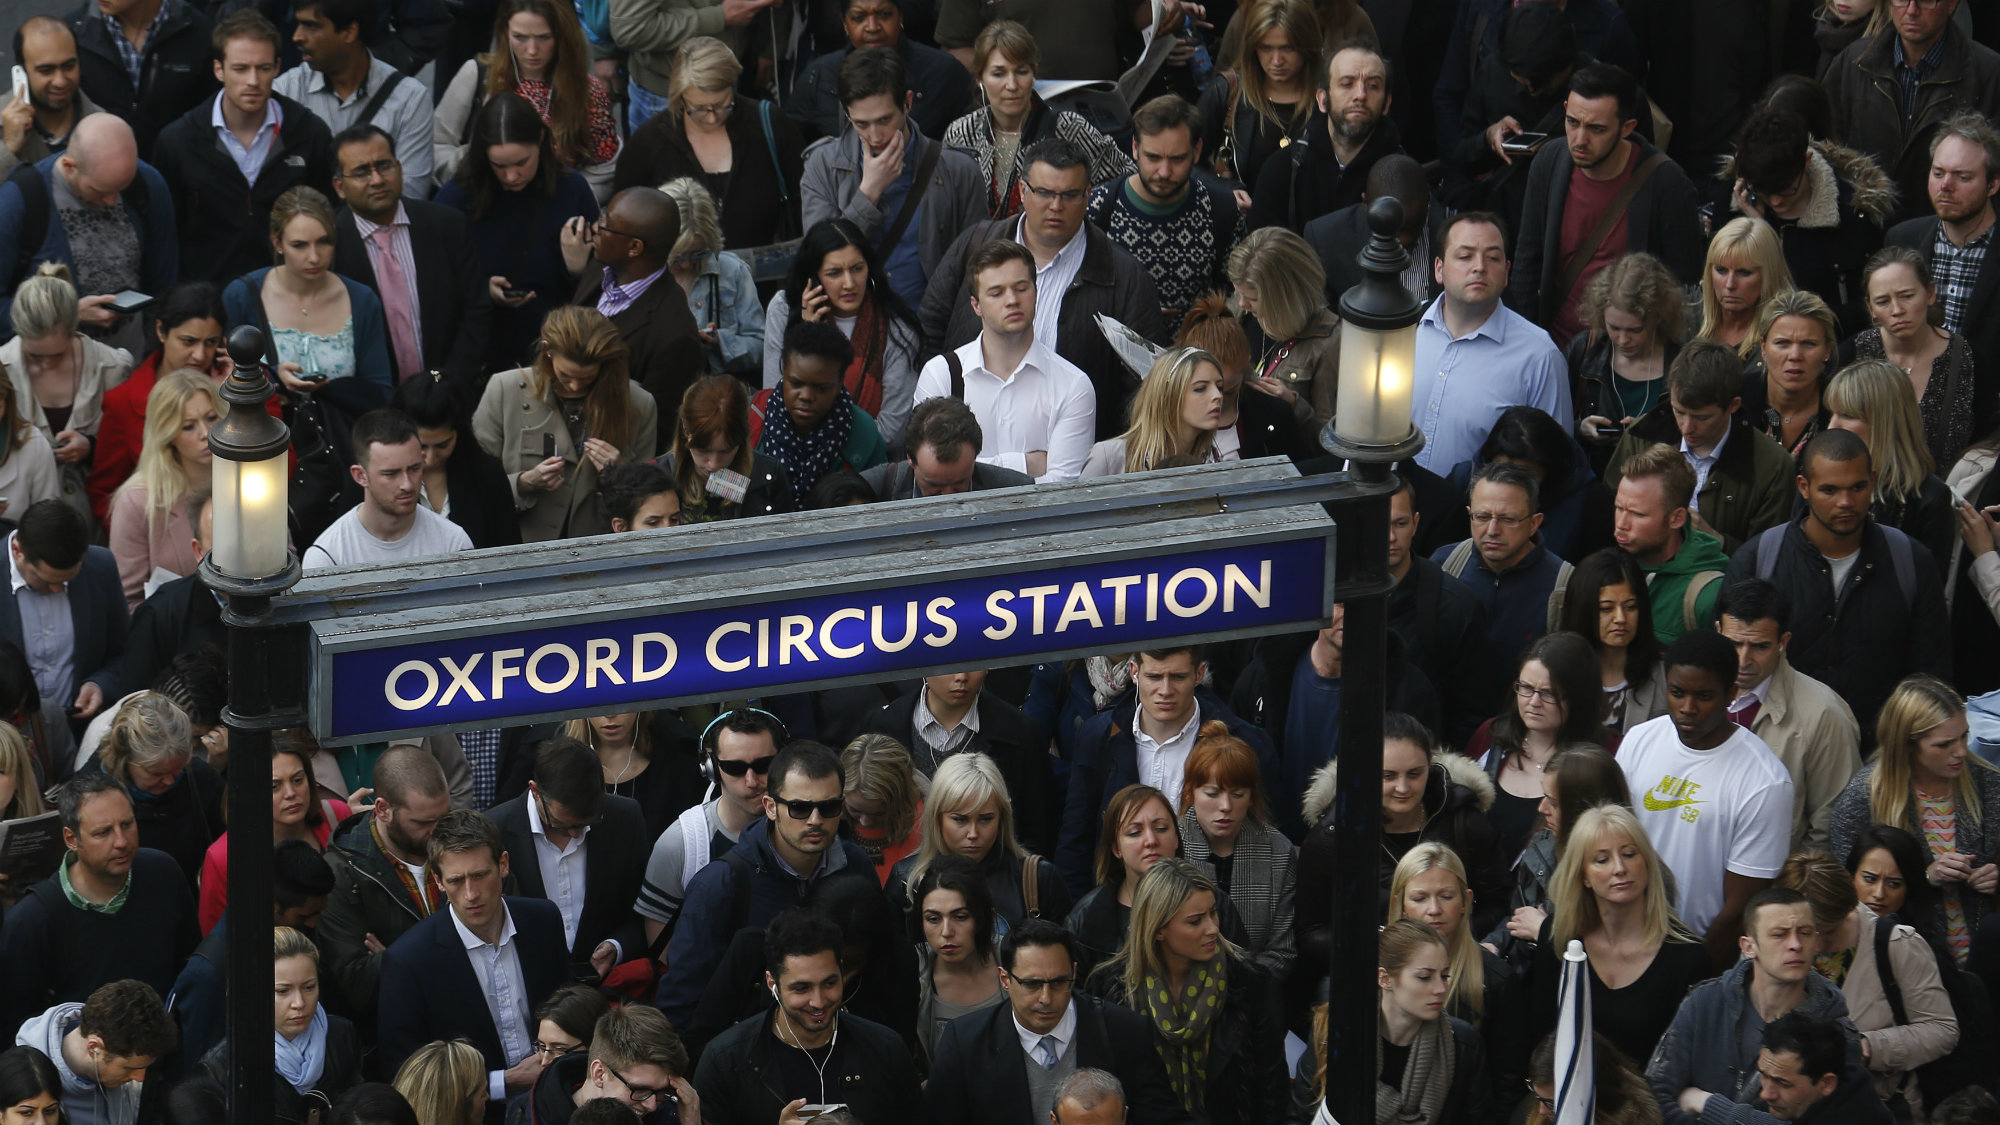 Commuters and shoppers queue for access to Oxford Circus underground station.